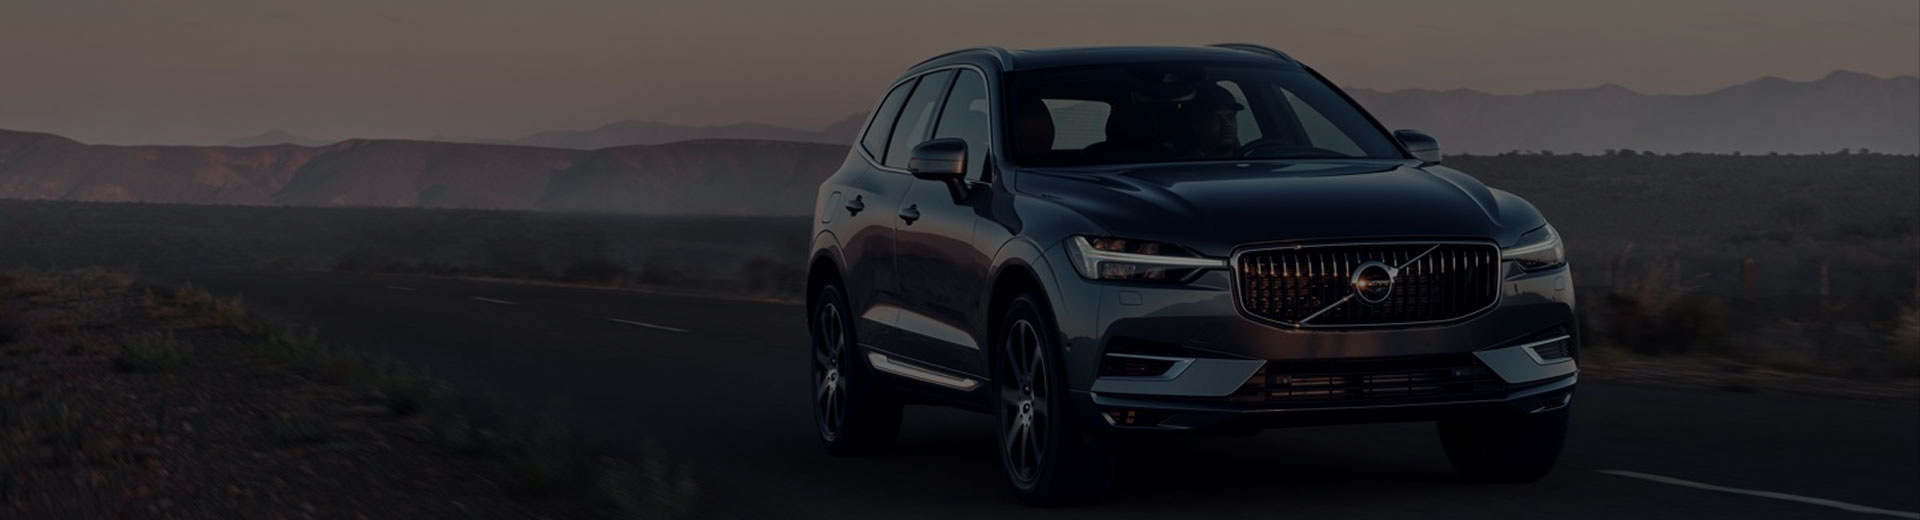 Volvo Xc60 Lease Deals Intelligent Car Leasing